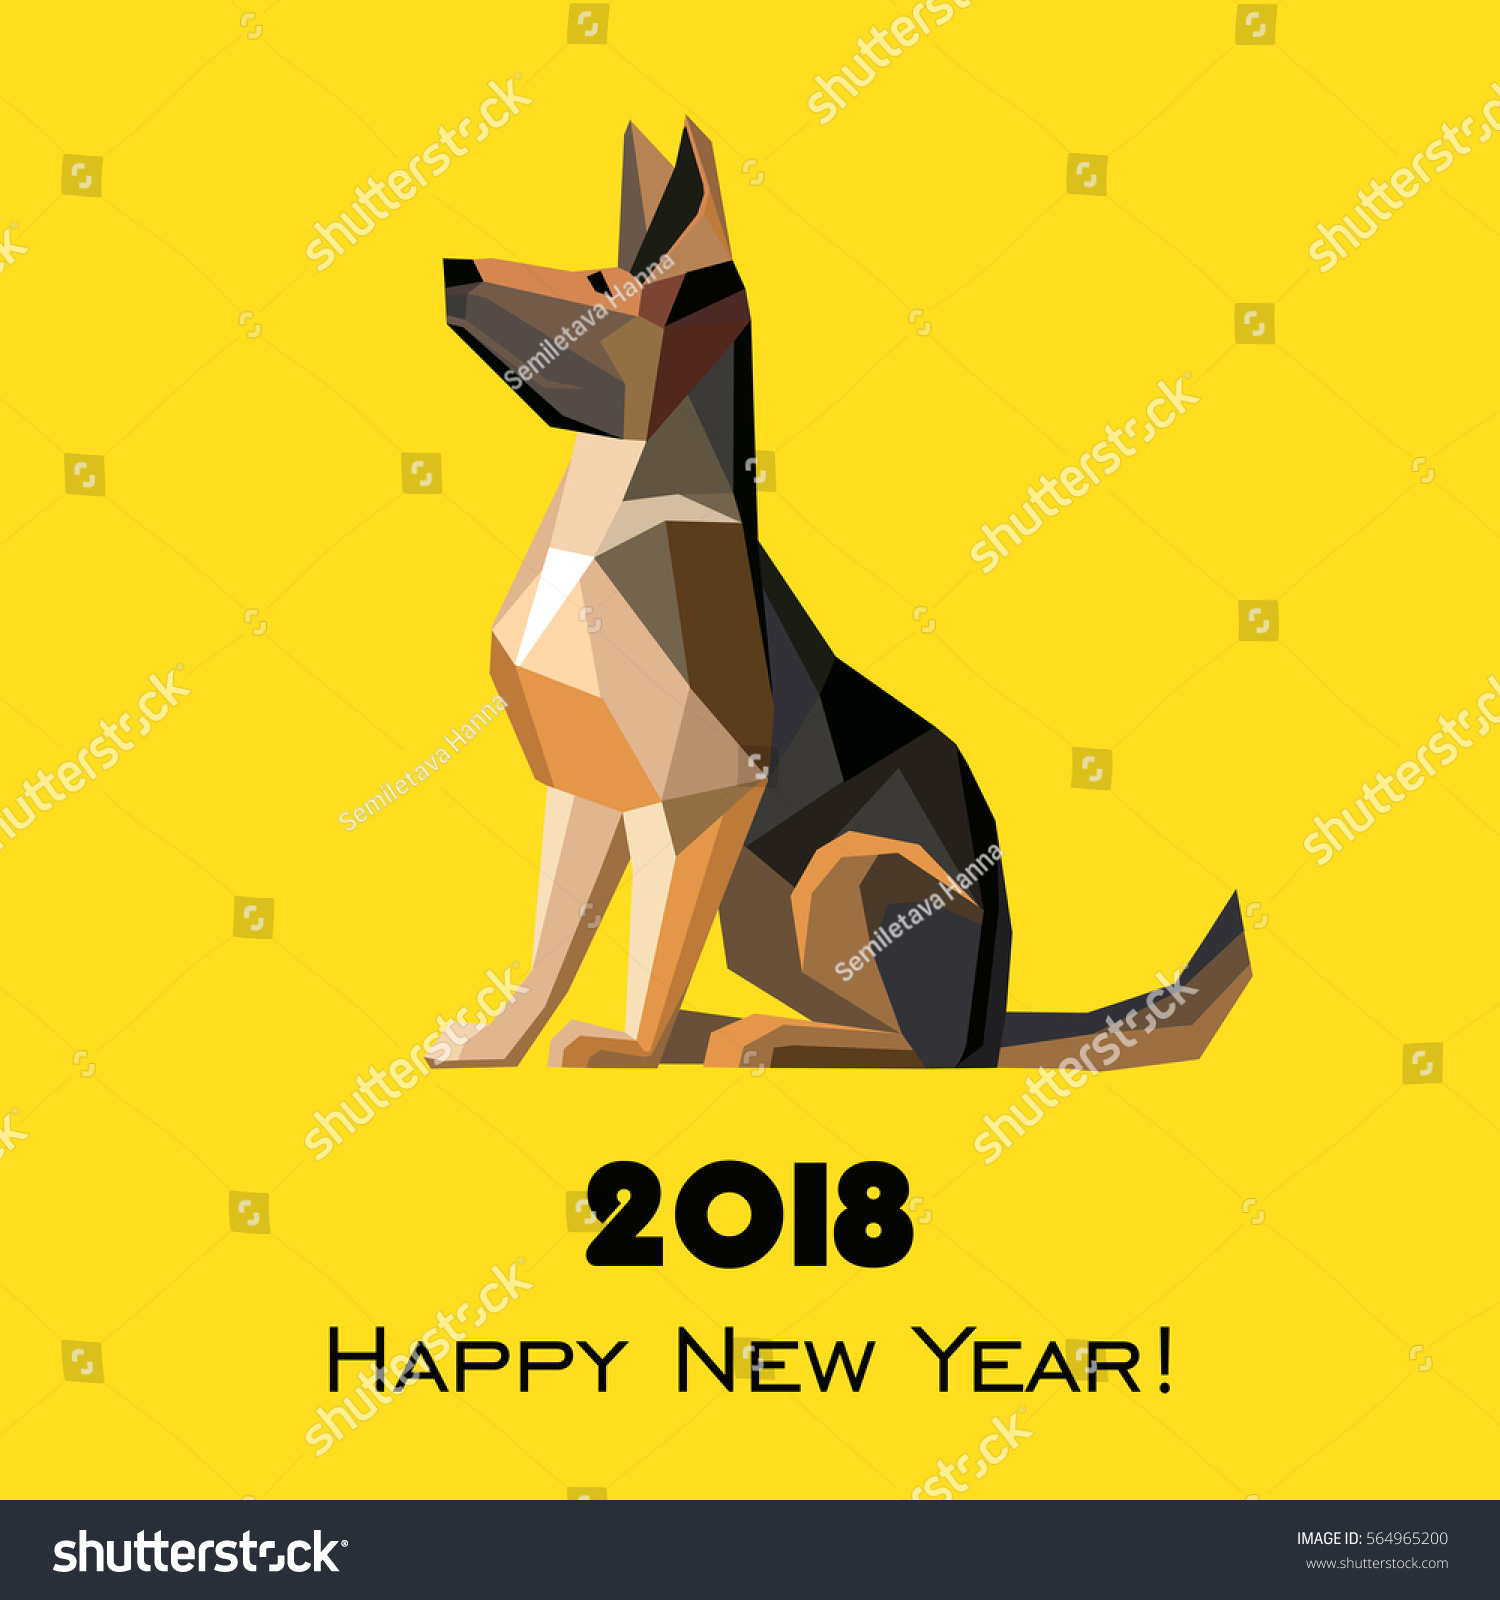 2018 Happy New Year Greeting Card Stock Illustration 564965200